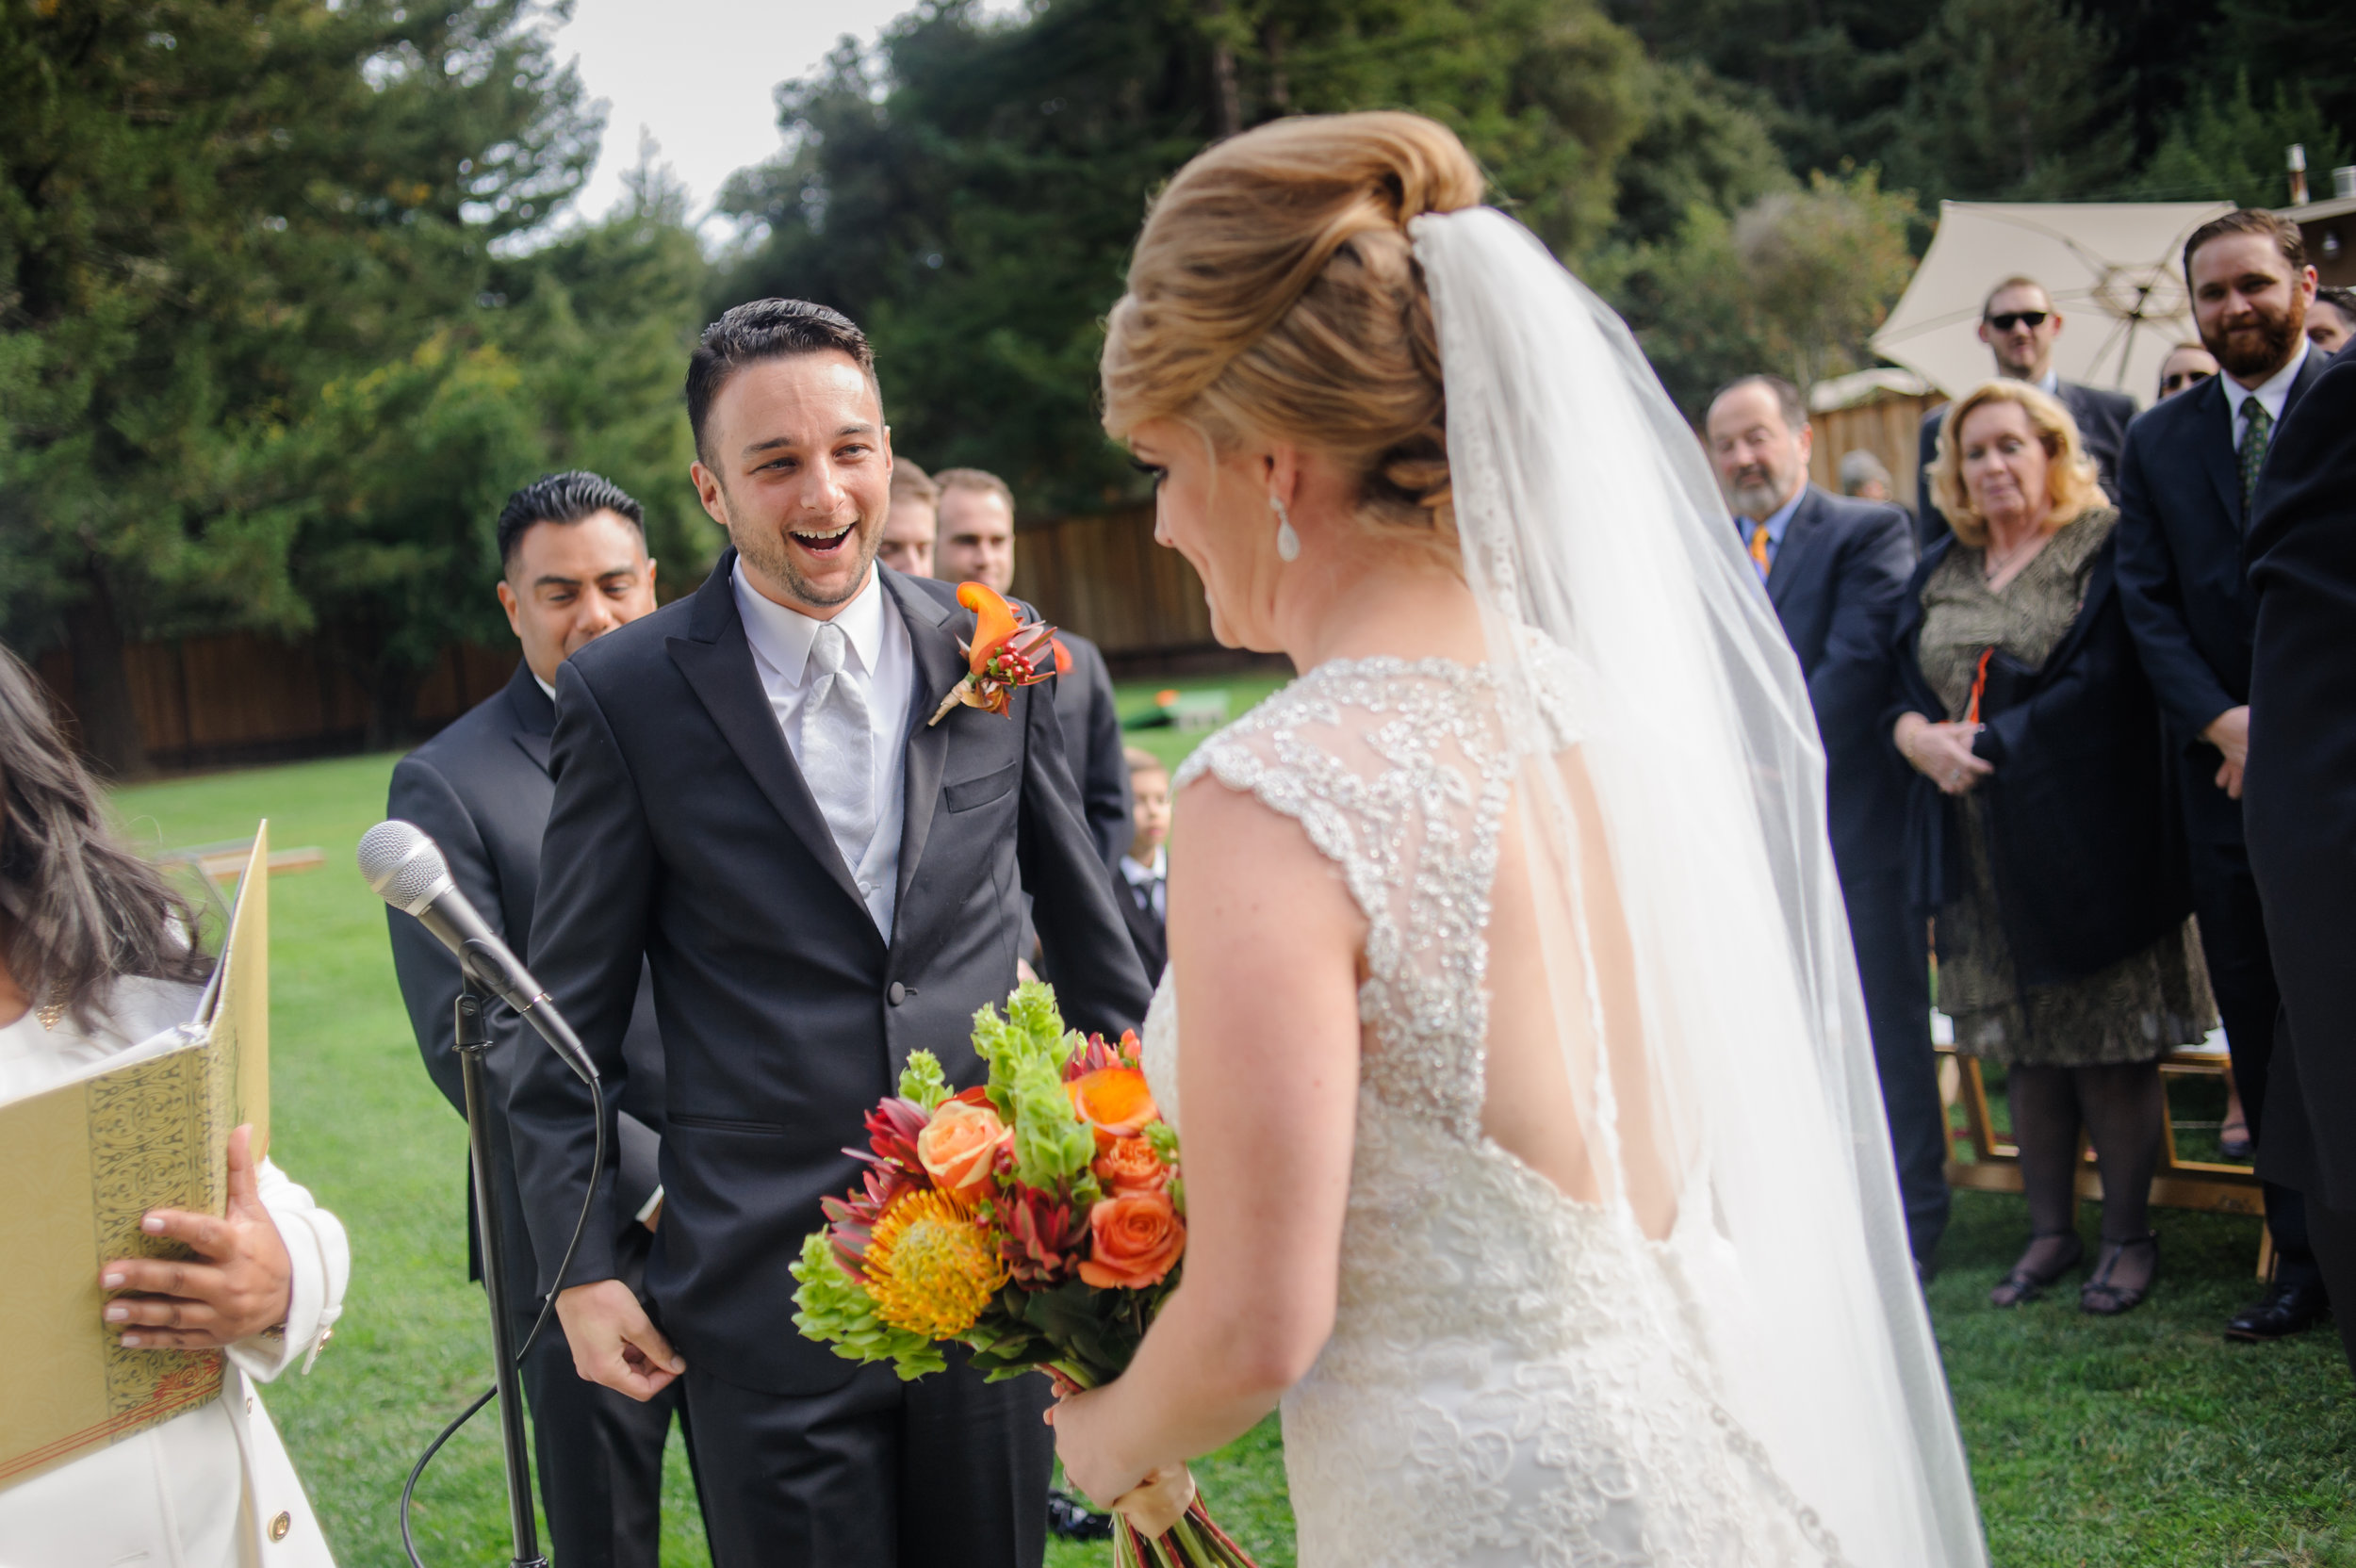 sammi-matt-010-the-mountain-terrace-woodside-wedding-photographer-katherine-nicole-photography.JPG